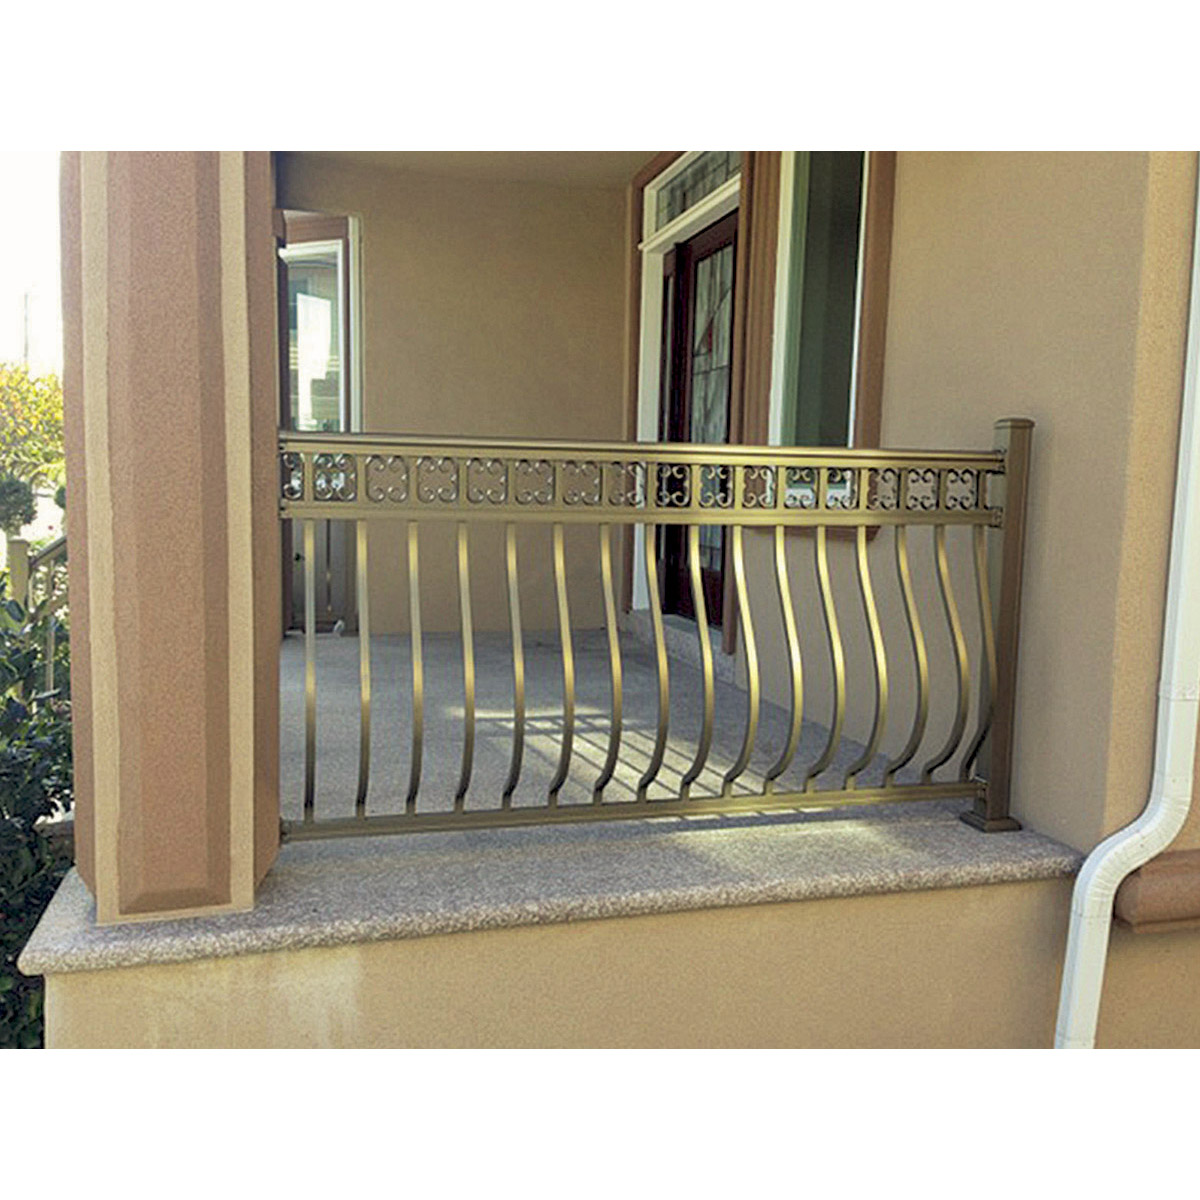 Arabian Railing with Bowed Balusters